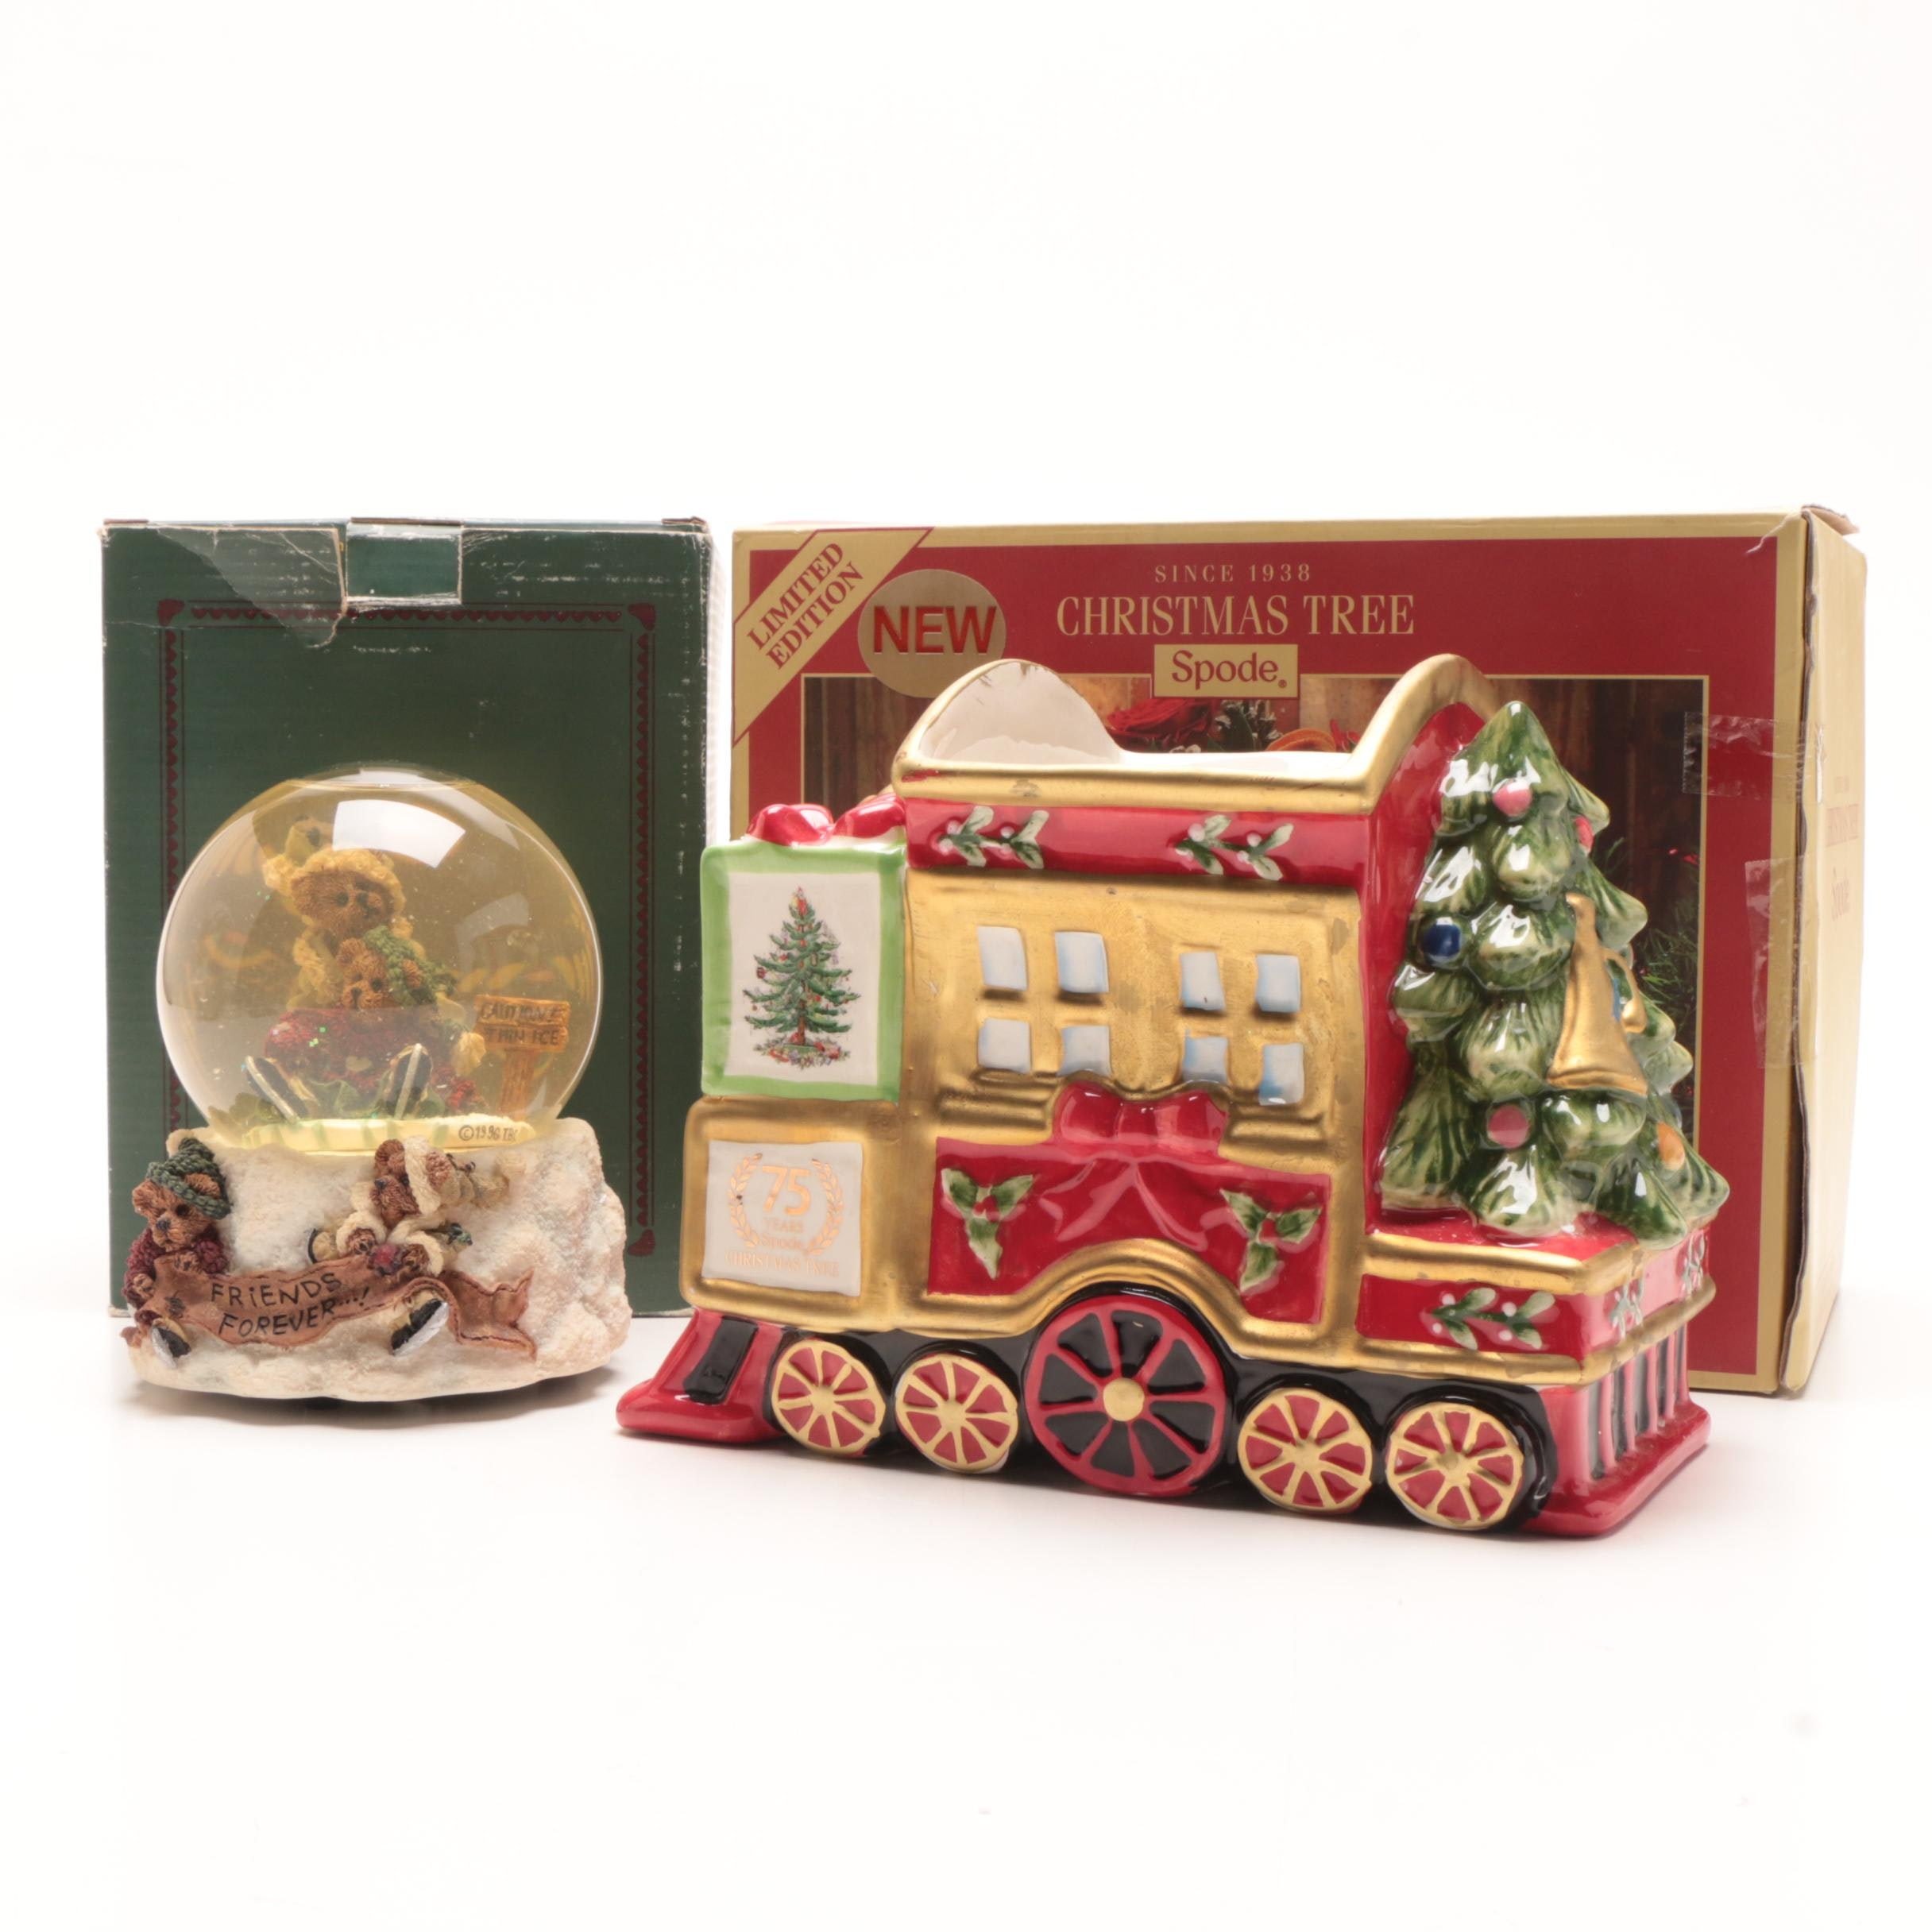 Spode Christmas Planter and a Boyd's Bear Musical Snow Globe with the Boxes